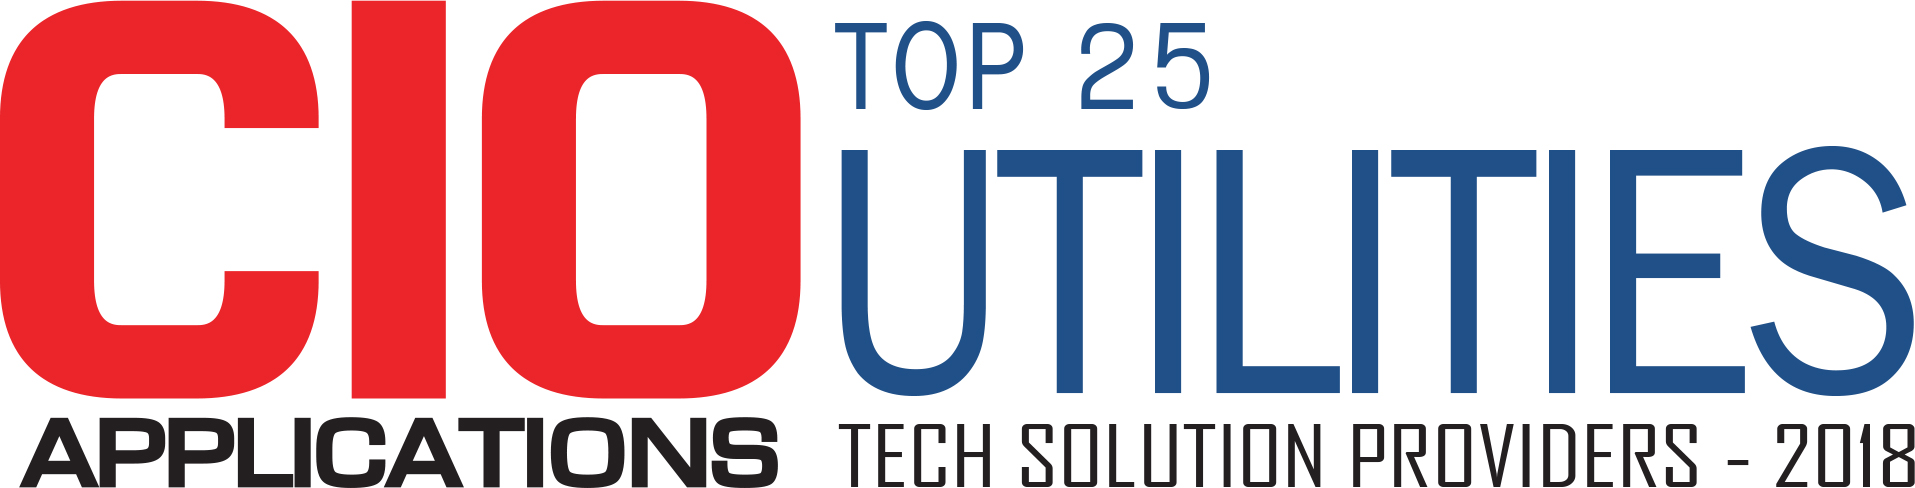 Top 25 Utilities Tech Solution Companies - 2018